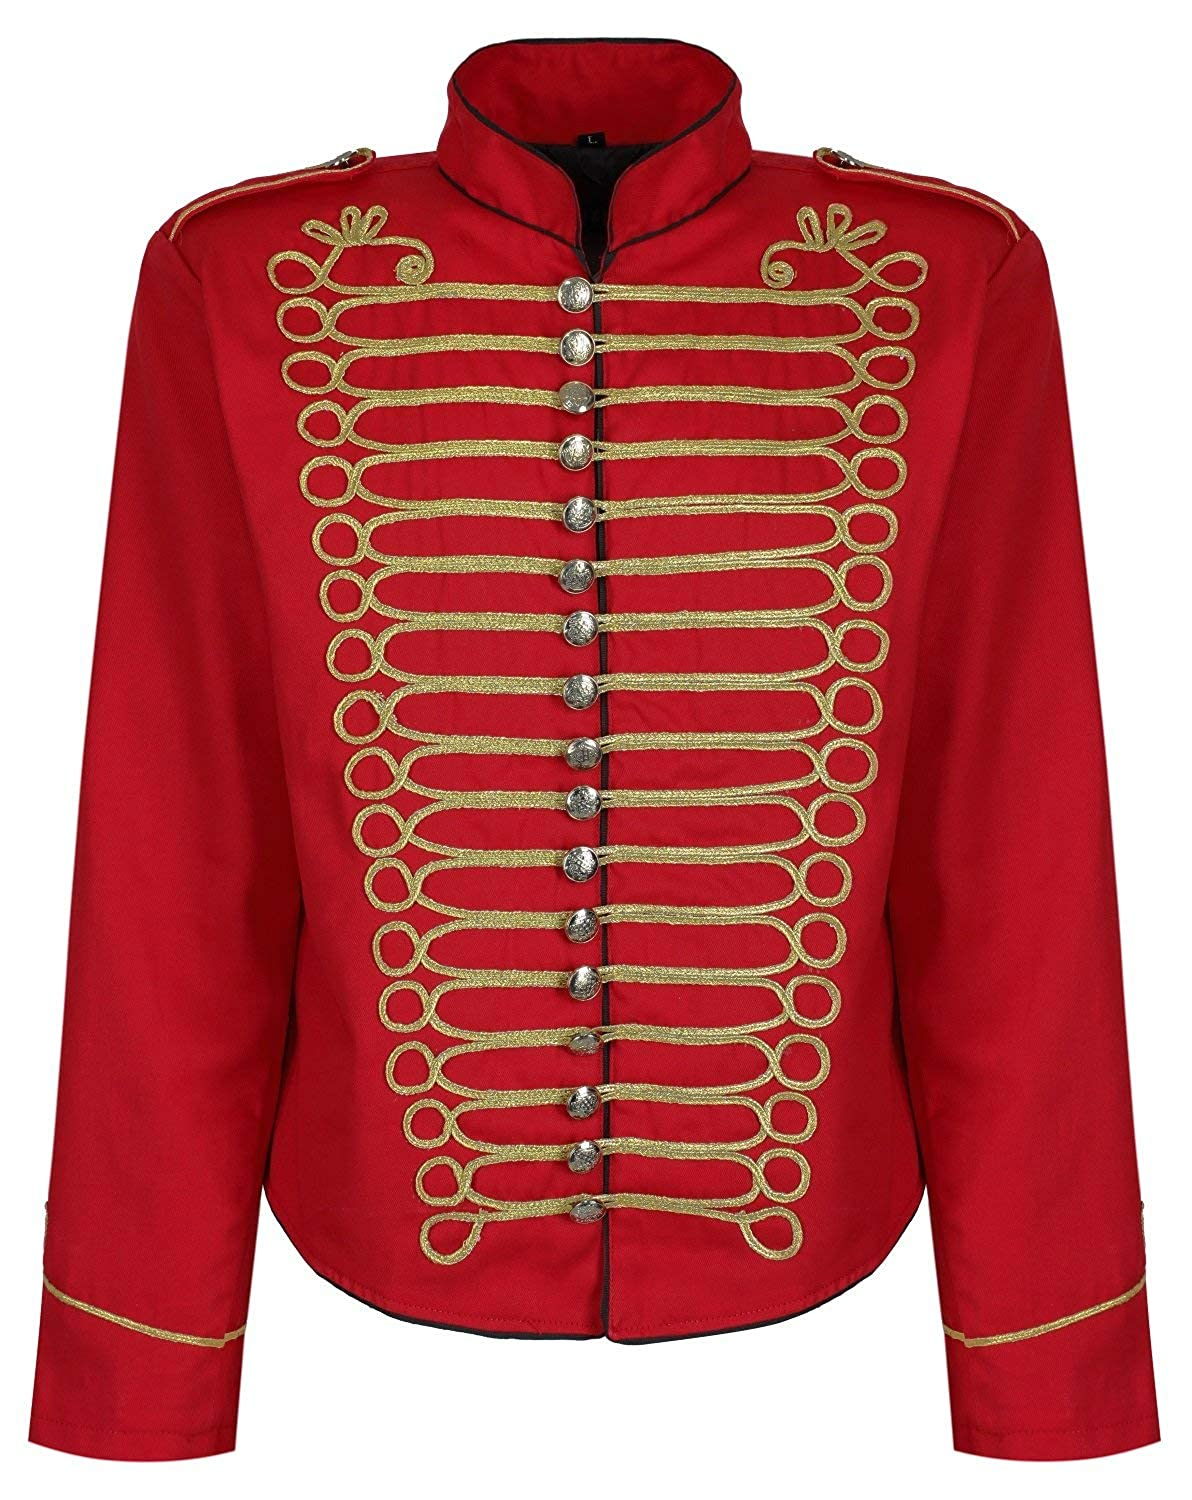 Victorian Mens Suits & Coats Ro Rox Mens Punk Officer Military Drummer Parade Jacket $59.99 AT vintagedancer.com